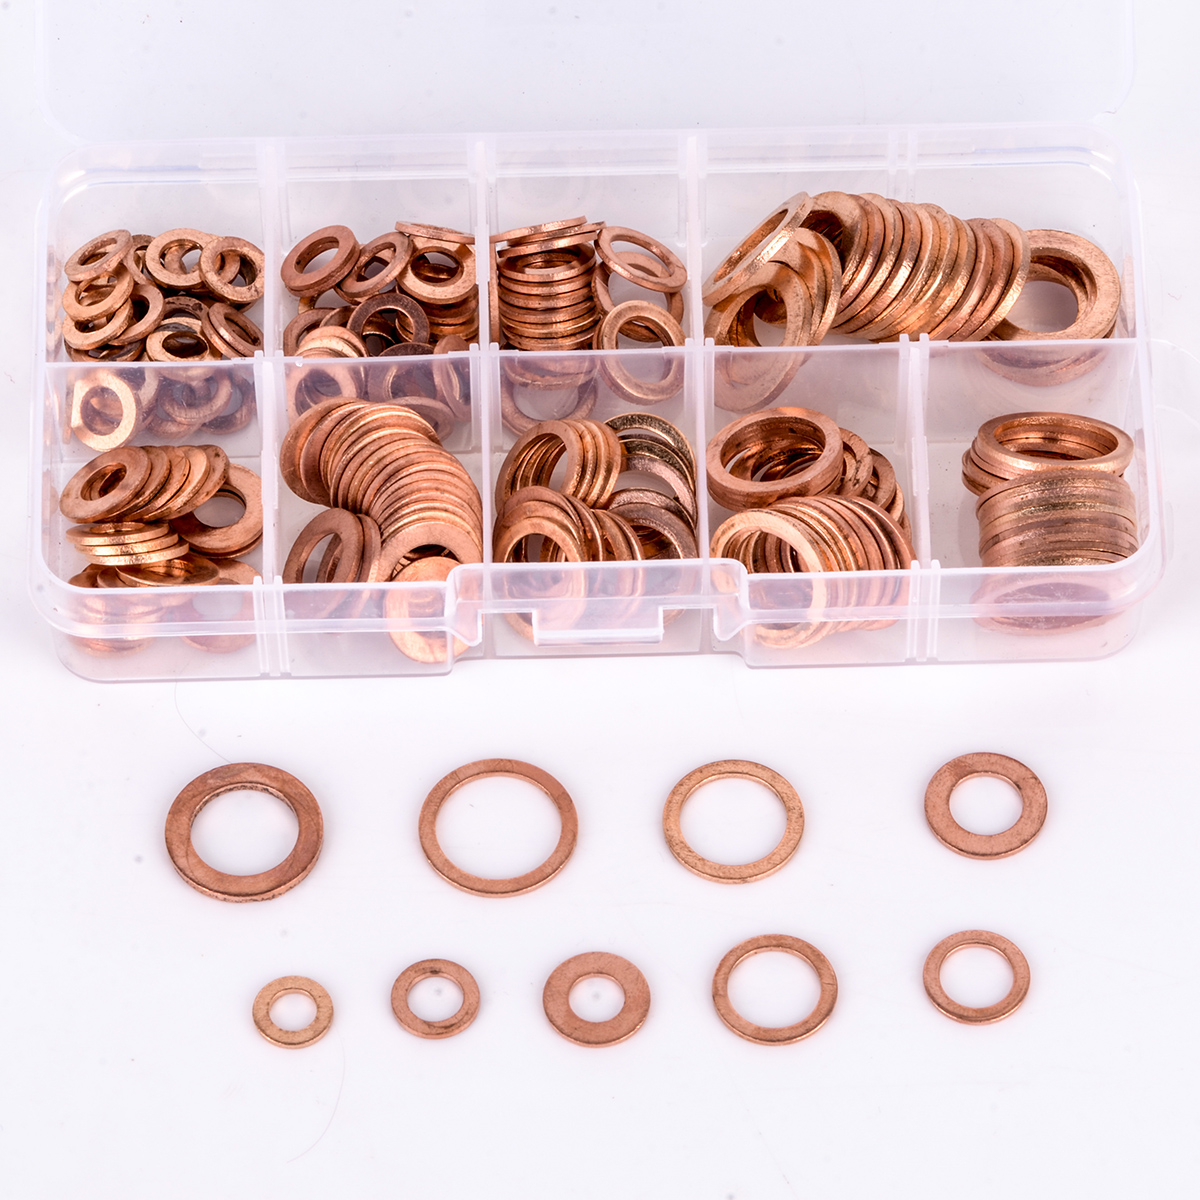 200pcs 9 Sizes Copper Washer Gasket Set Flat Ring Seal Kit Set with Plastic Box M5/M6/M8/M10/M12/M14 For Generators Machinery m6 m6 12 0 8 m6x12x0 8 m6 12 1 m6x12x1 din7603 insulation gasket shim crush ring seal red steel paper washer